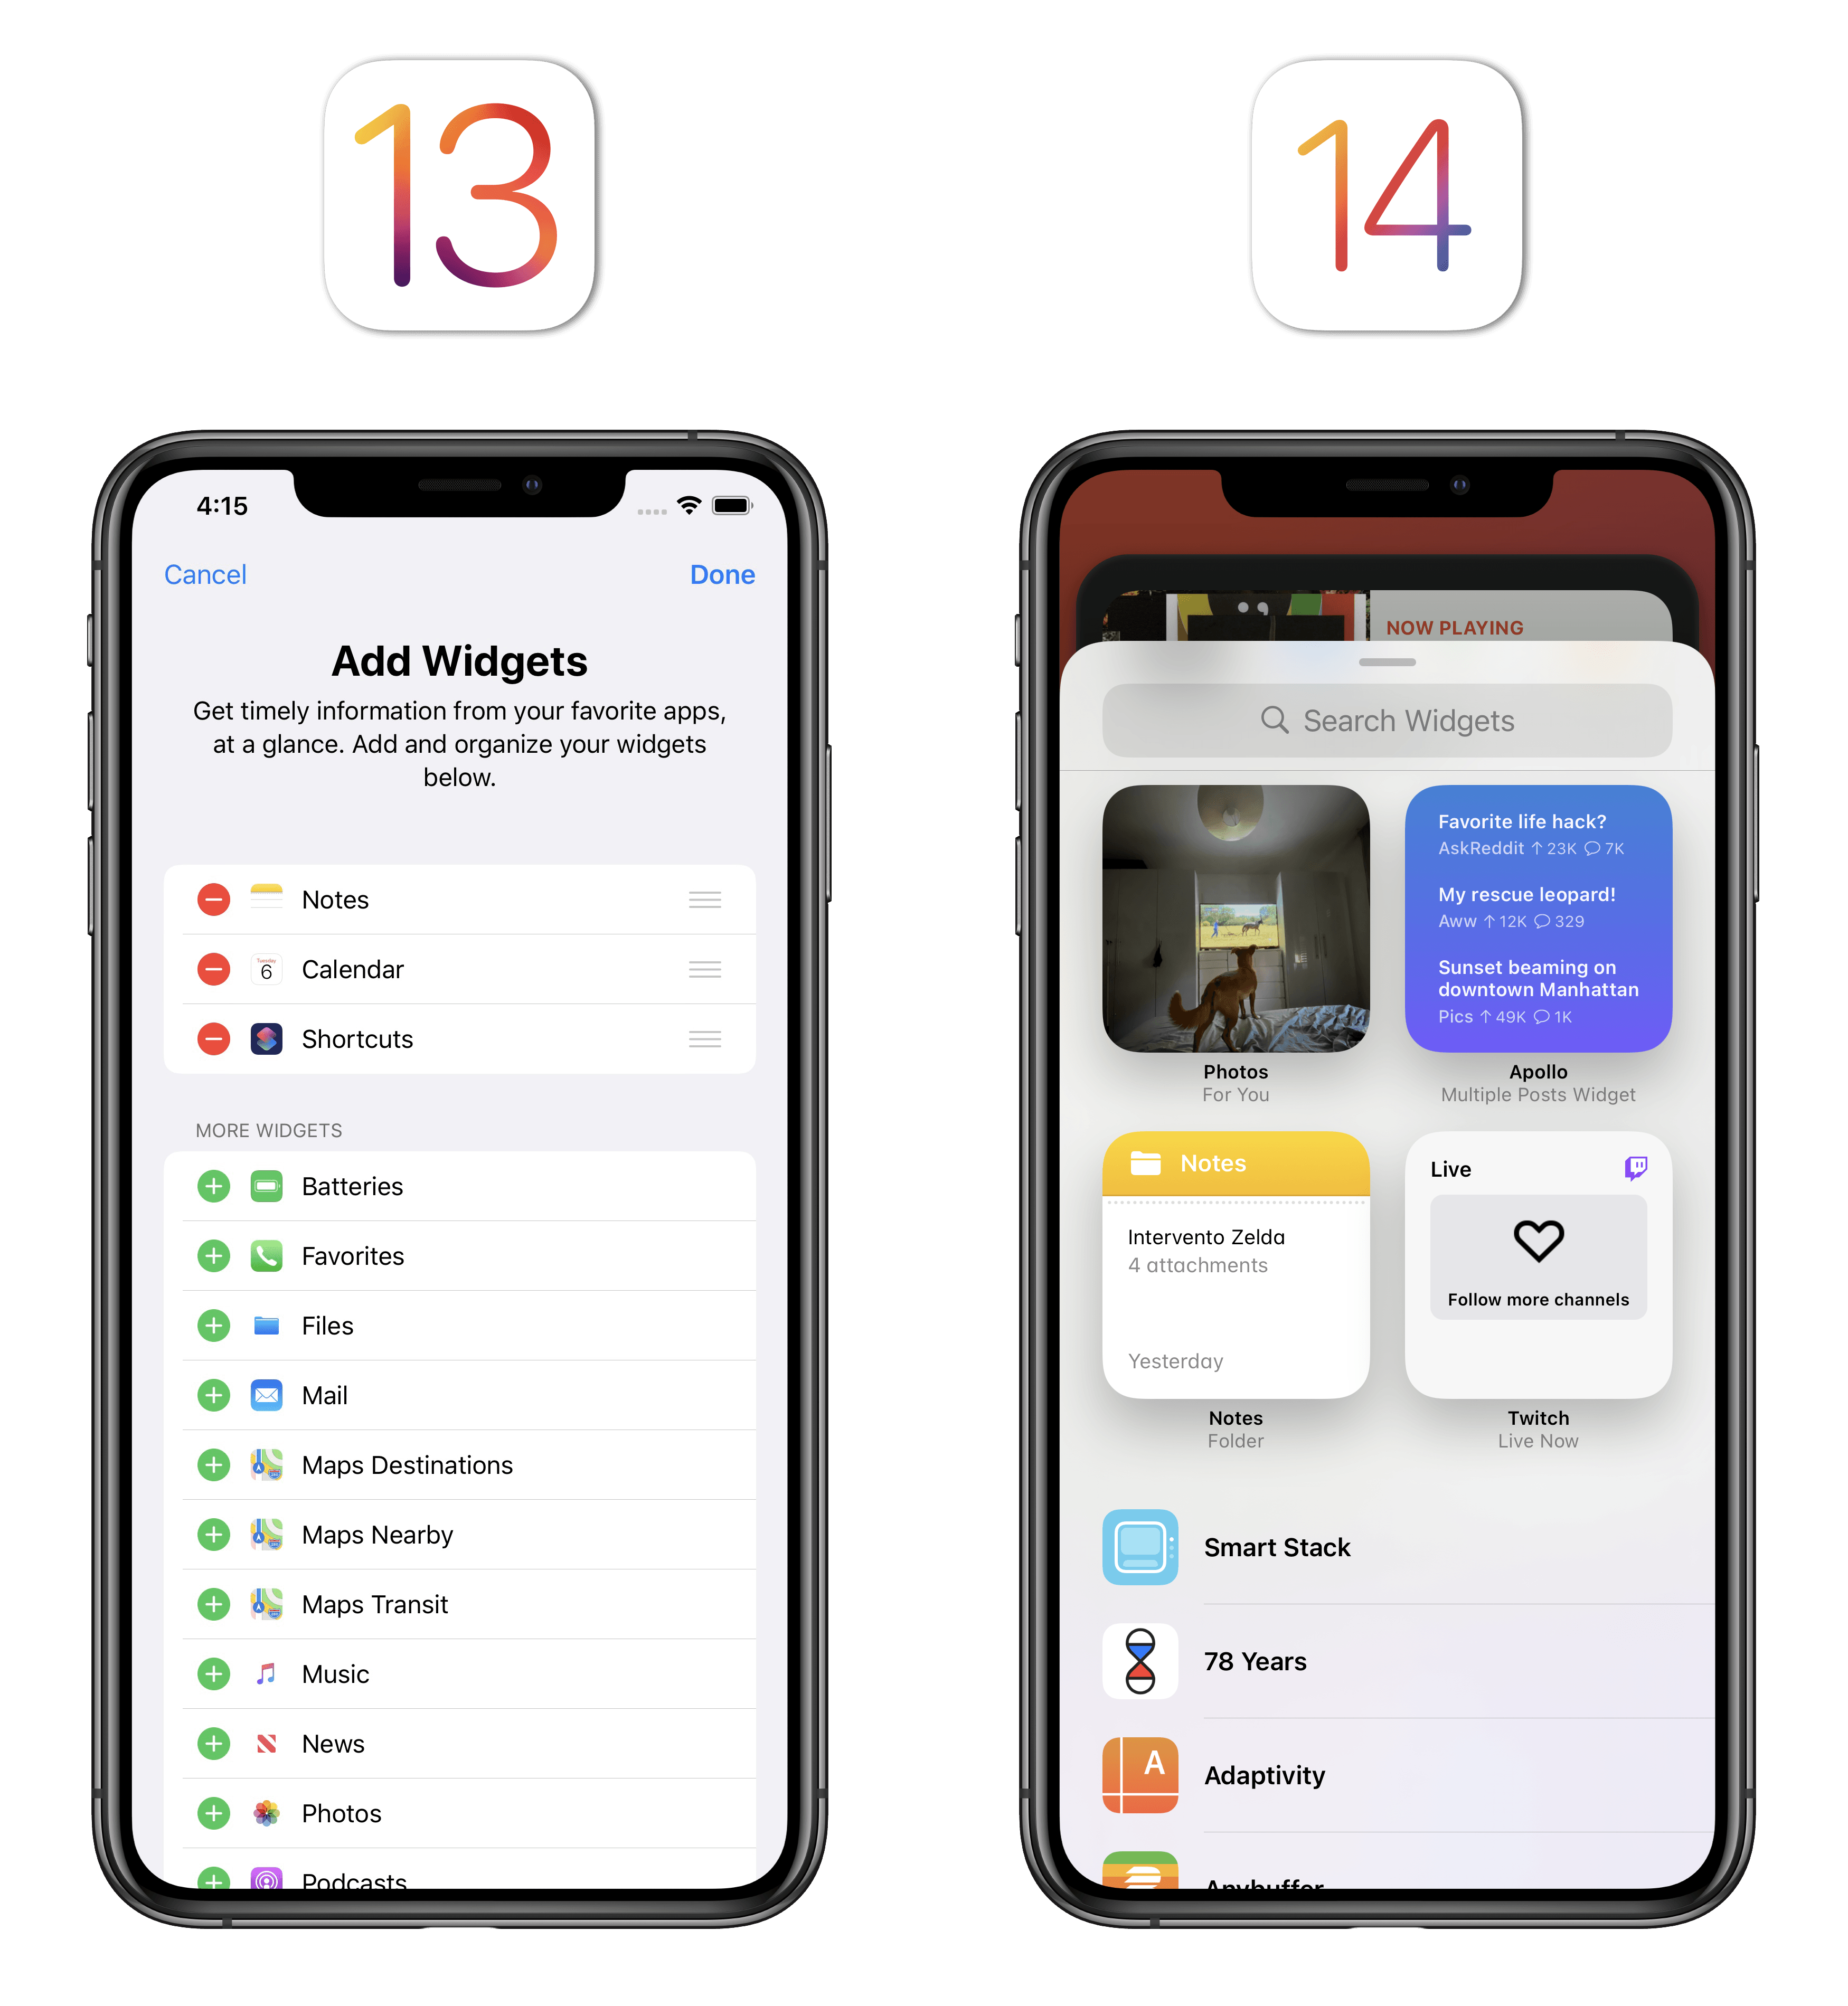 Installing widgets in iOS 14 is a much more visual, contextual experience since widgets contain real data and can be previewed in multiple sizes.